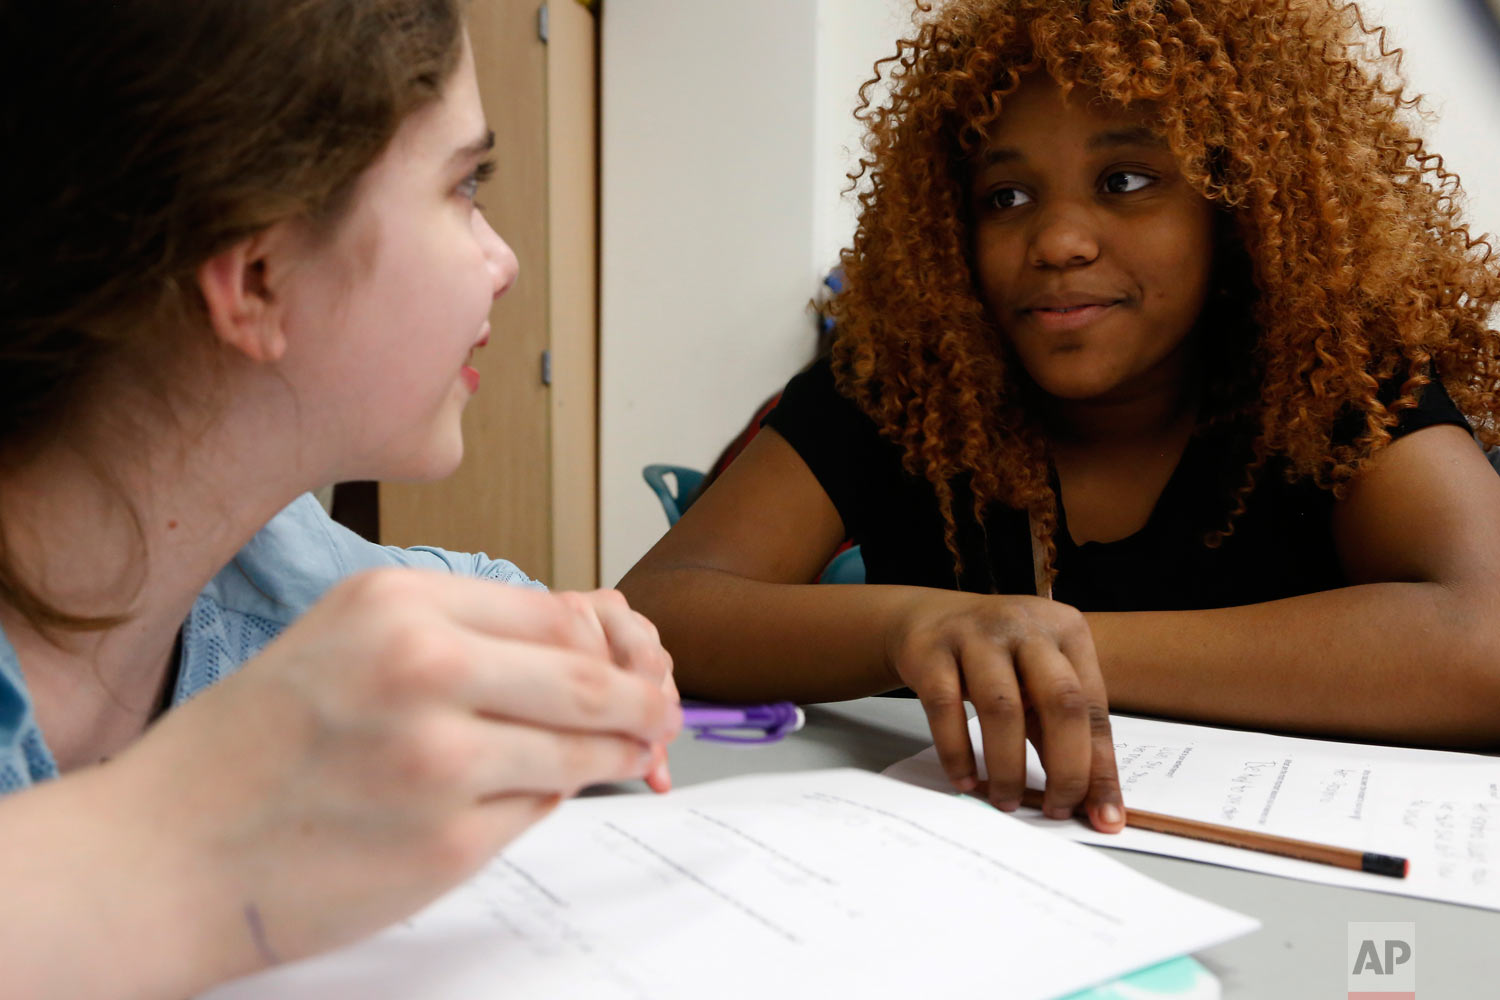 In this April 27, 2017, photo, Miracle Shanklin, right, and Isabella Iniguez, both age 12 when this photo was taken, talk during an ice-breaker exercise in Chicago. The session brought together students from the public Manierre Elementary School and the private Catherine Cook School - on opposite sides of Sedgwick Street. (AP Photo/Martha Irvine)